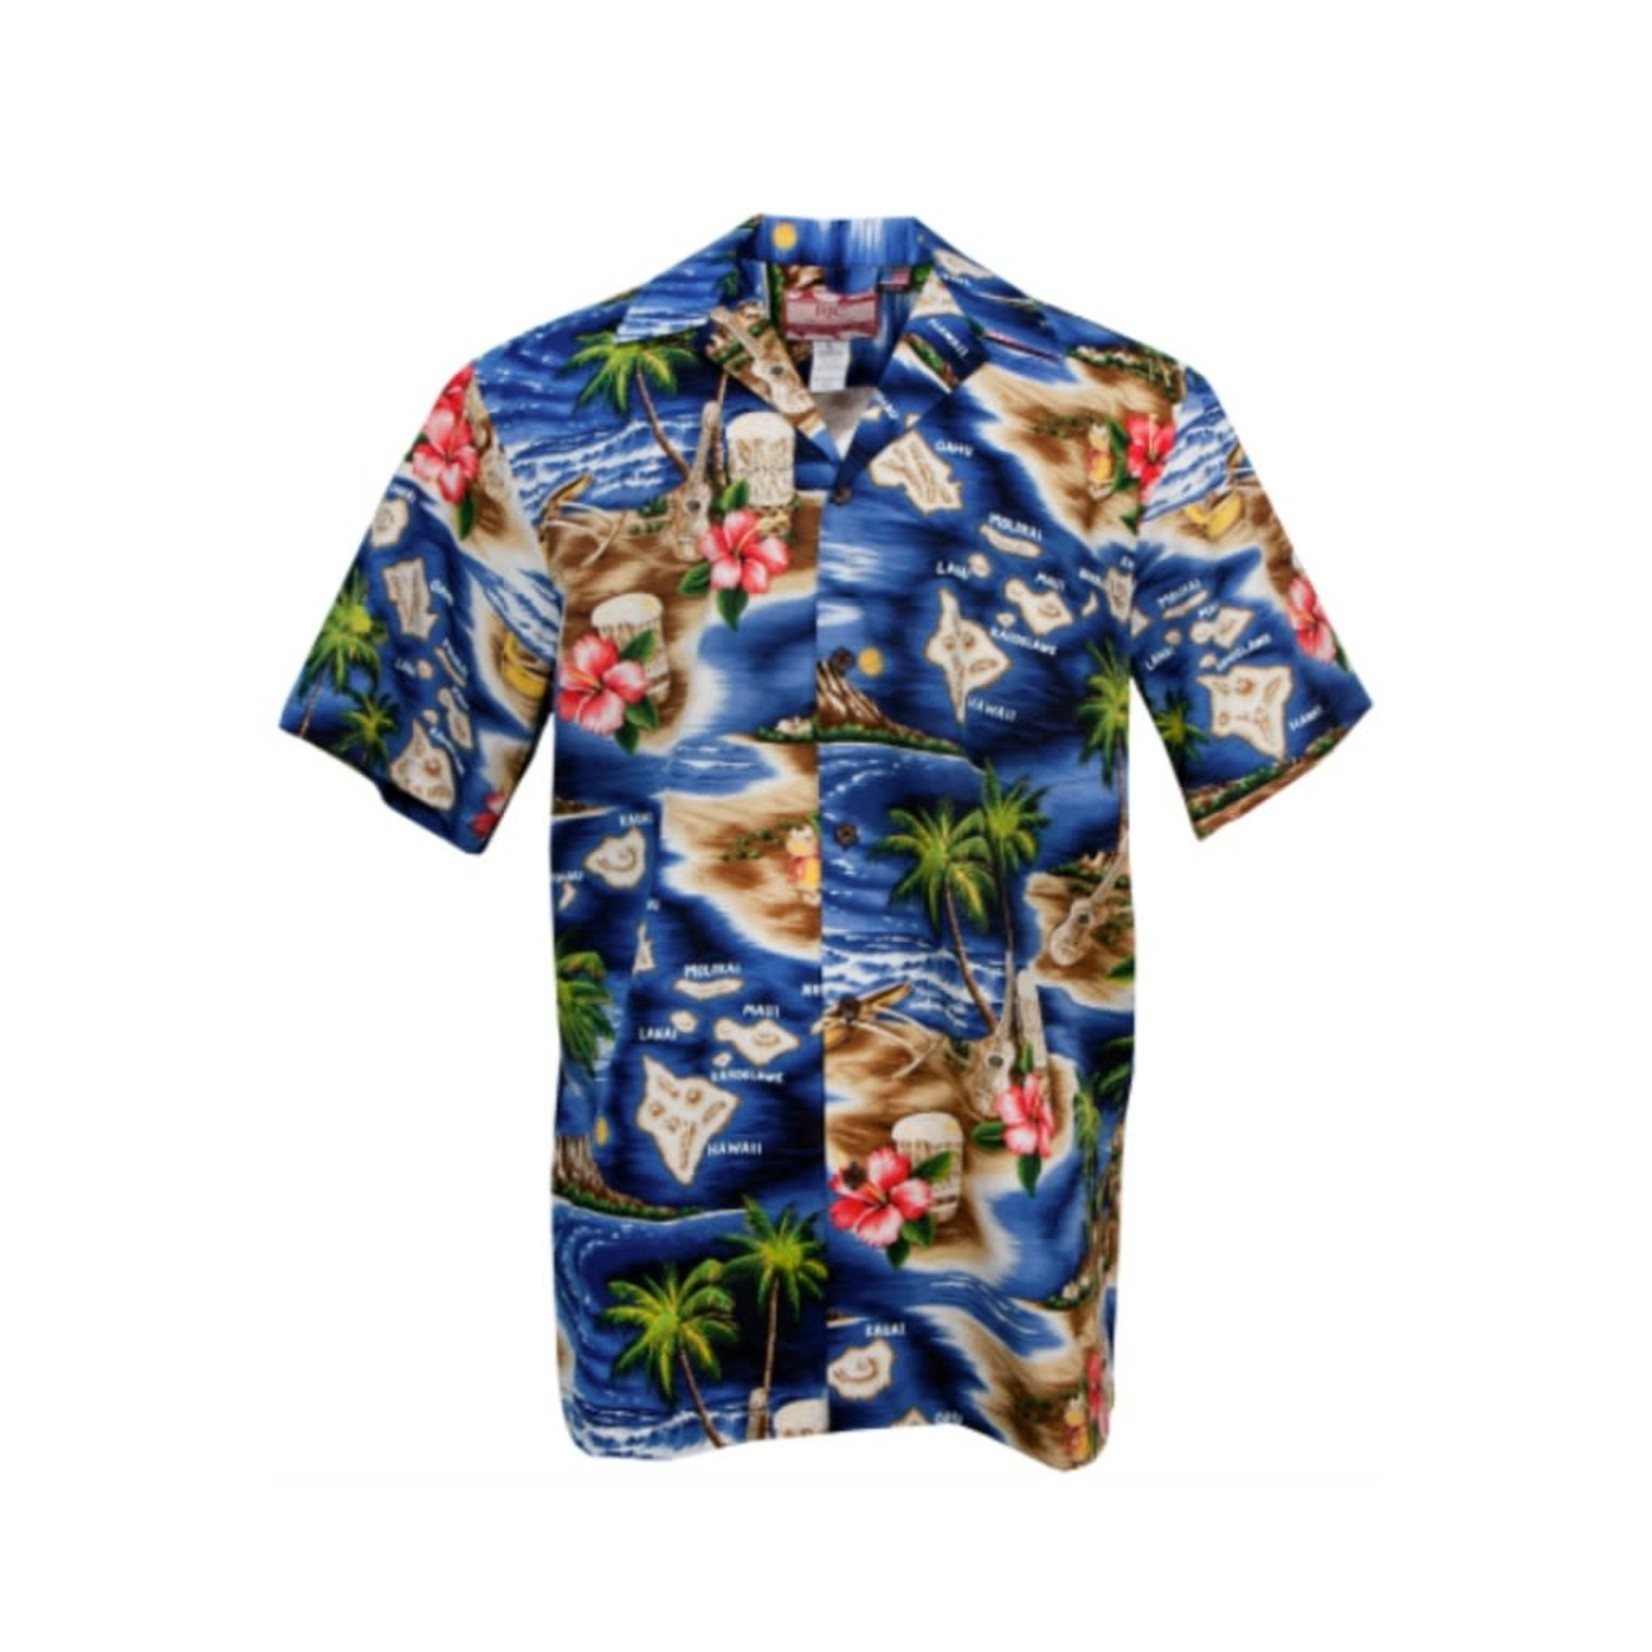 Robert J. Clancey Men's Aloha Shirt